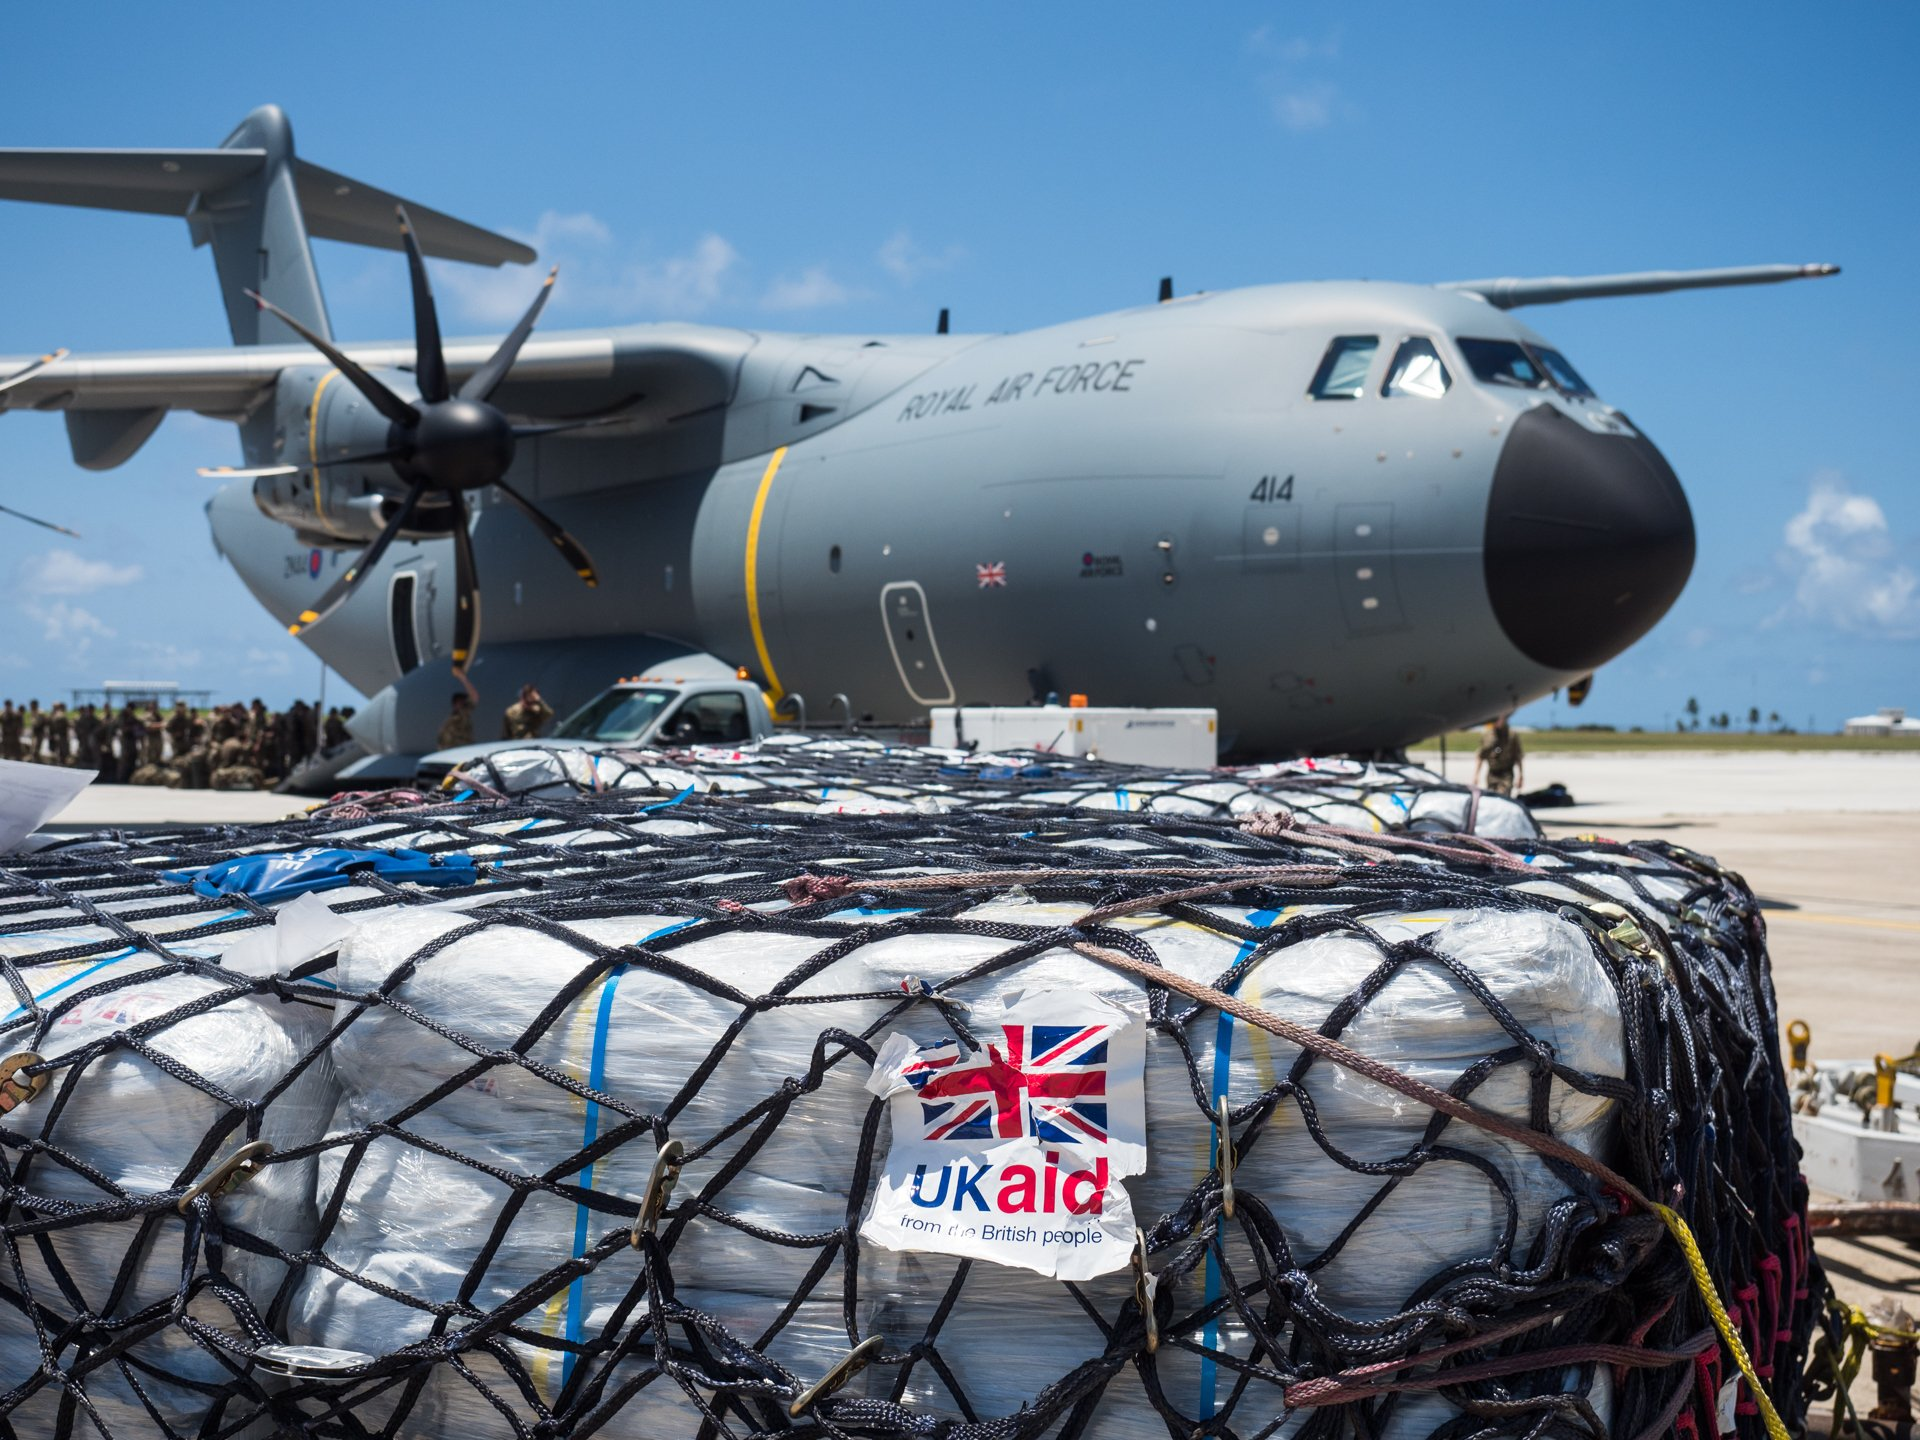 UK military passengers board an RAF A400M Atlas transport aircraft in Barbados on 9 September 2017, preparing to deliver UK aid to Caribbean islands stricken by Hurricane Irma.